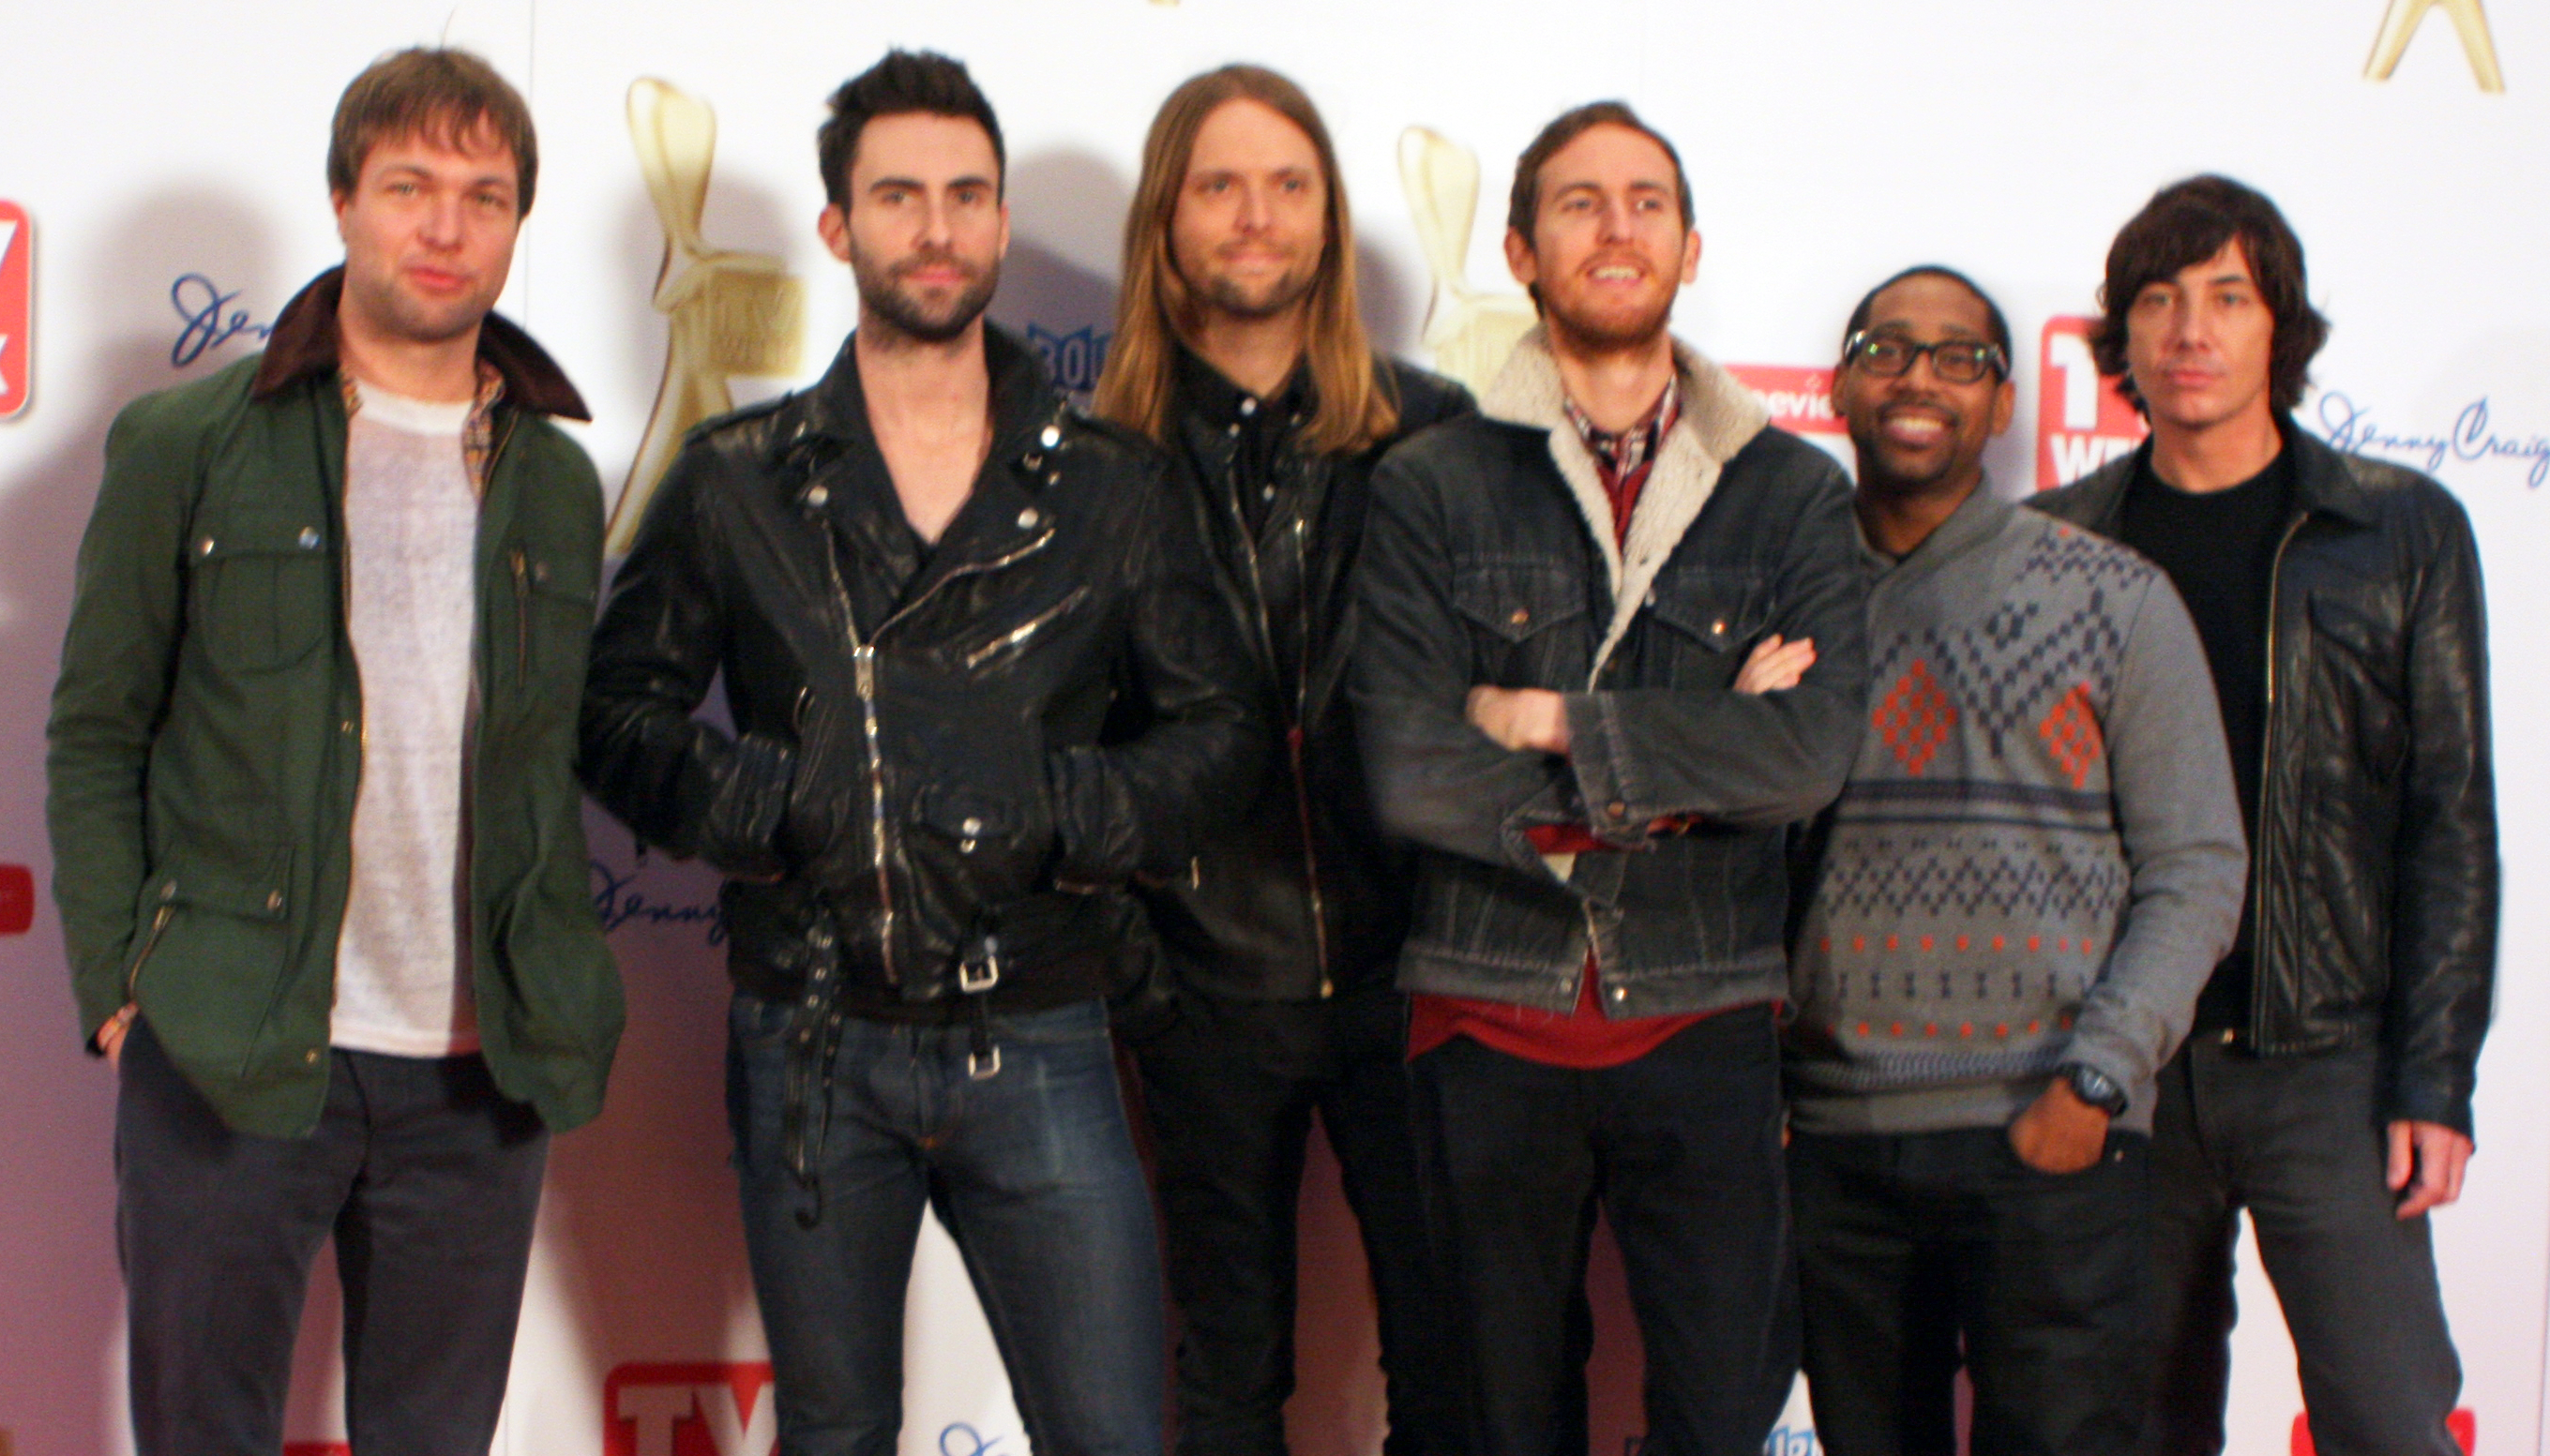 Maroon 5 Backgrounds, Compatible - PC, Mobile, Gadgets| 2719x1553 px